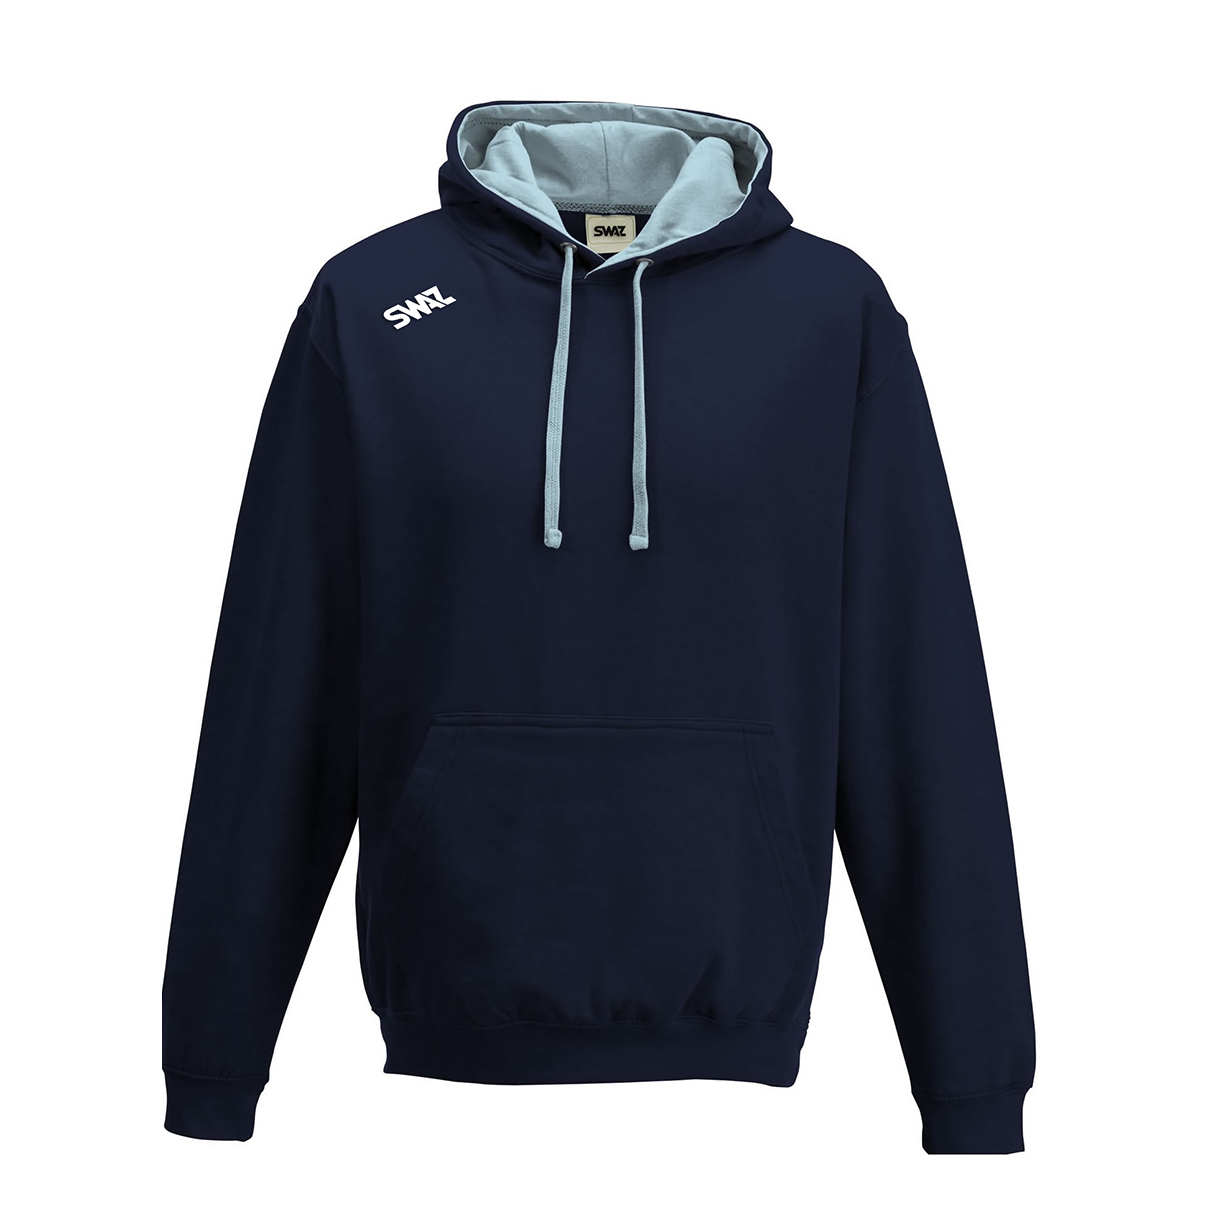 SWAZ Club Hoody – Navy/Sky Blue